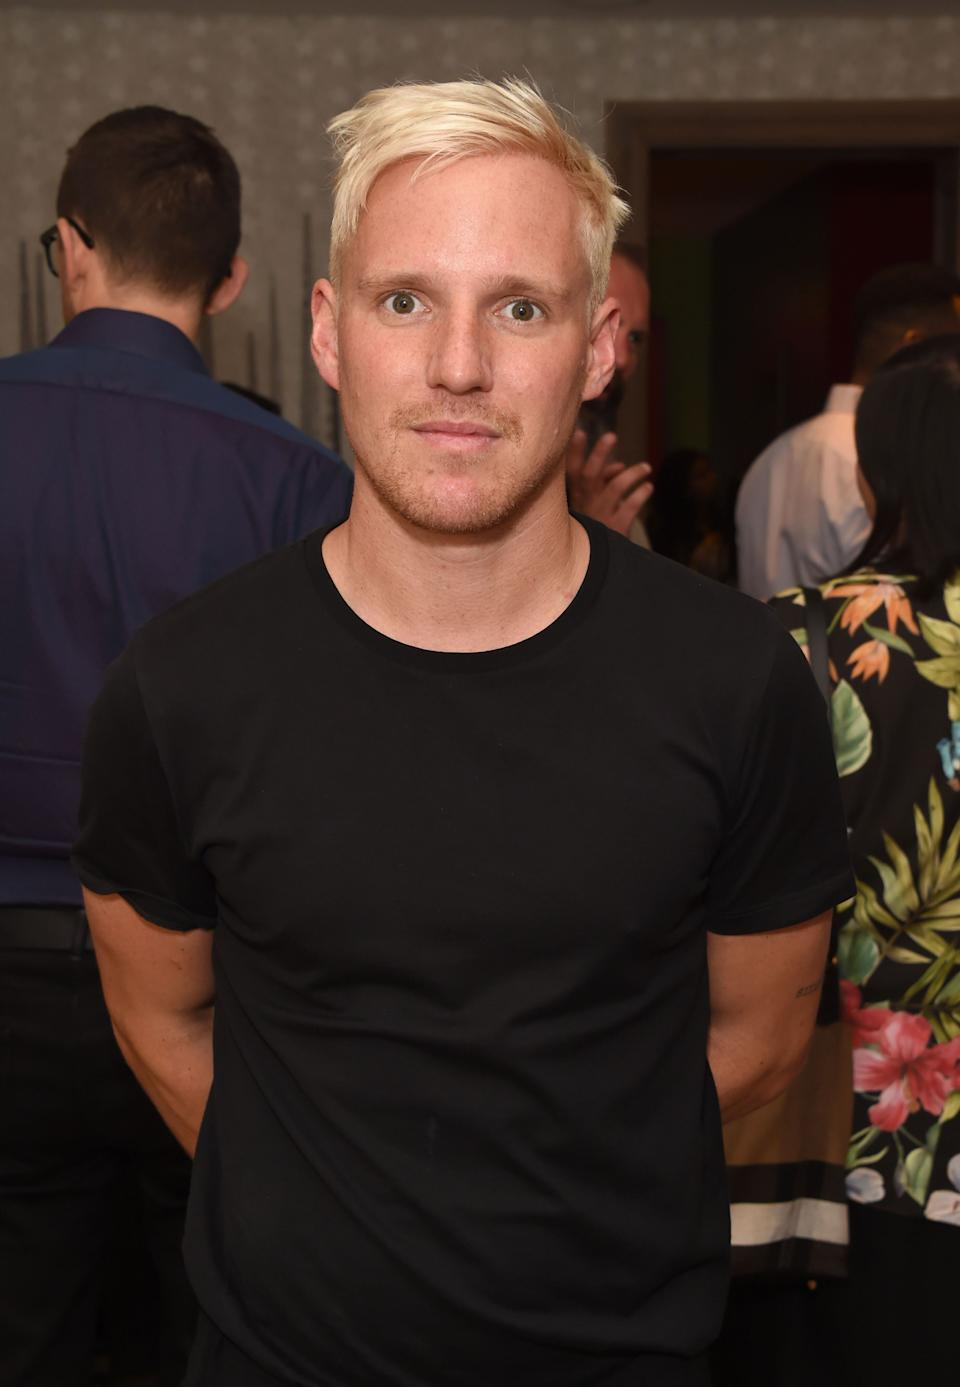 """This long-standing Made In Chelsea cast member was not someone we were expecting to see on the Strictly Come Dancing line-up, as the show has previously stayed away from casting reality stars, with the brief exception of TOWIE's Mark Wright back in 2014.<br /><br />He joked: """"I am beyond thrilled to be asked to be on Strictly, the only person potentially more thrilled is my mother. I have finally become the son she hoped for!""""<br /><br />As well as being one of Made In Chelsea's longest-serving stars, Jamie is also a businessman, and appeared on Celebrity Hunted alongside co-star Spencer Matthews."""